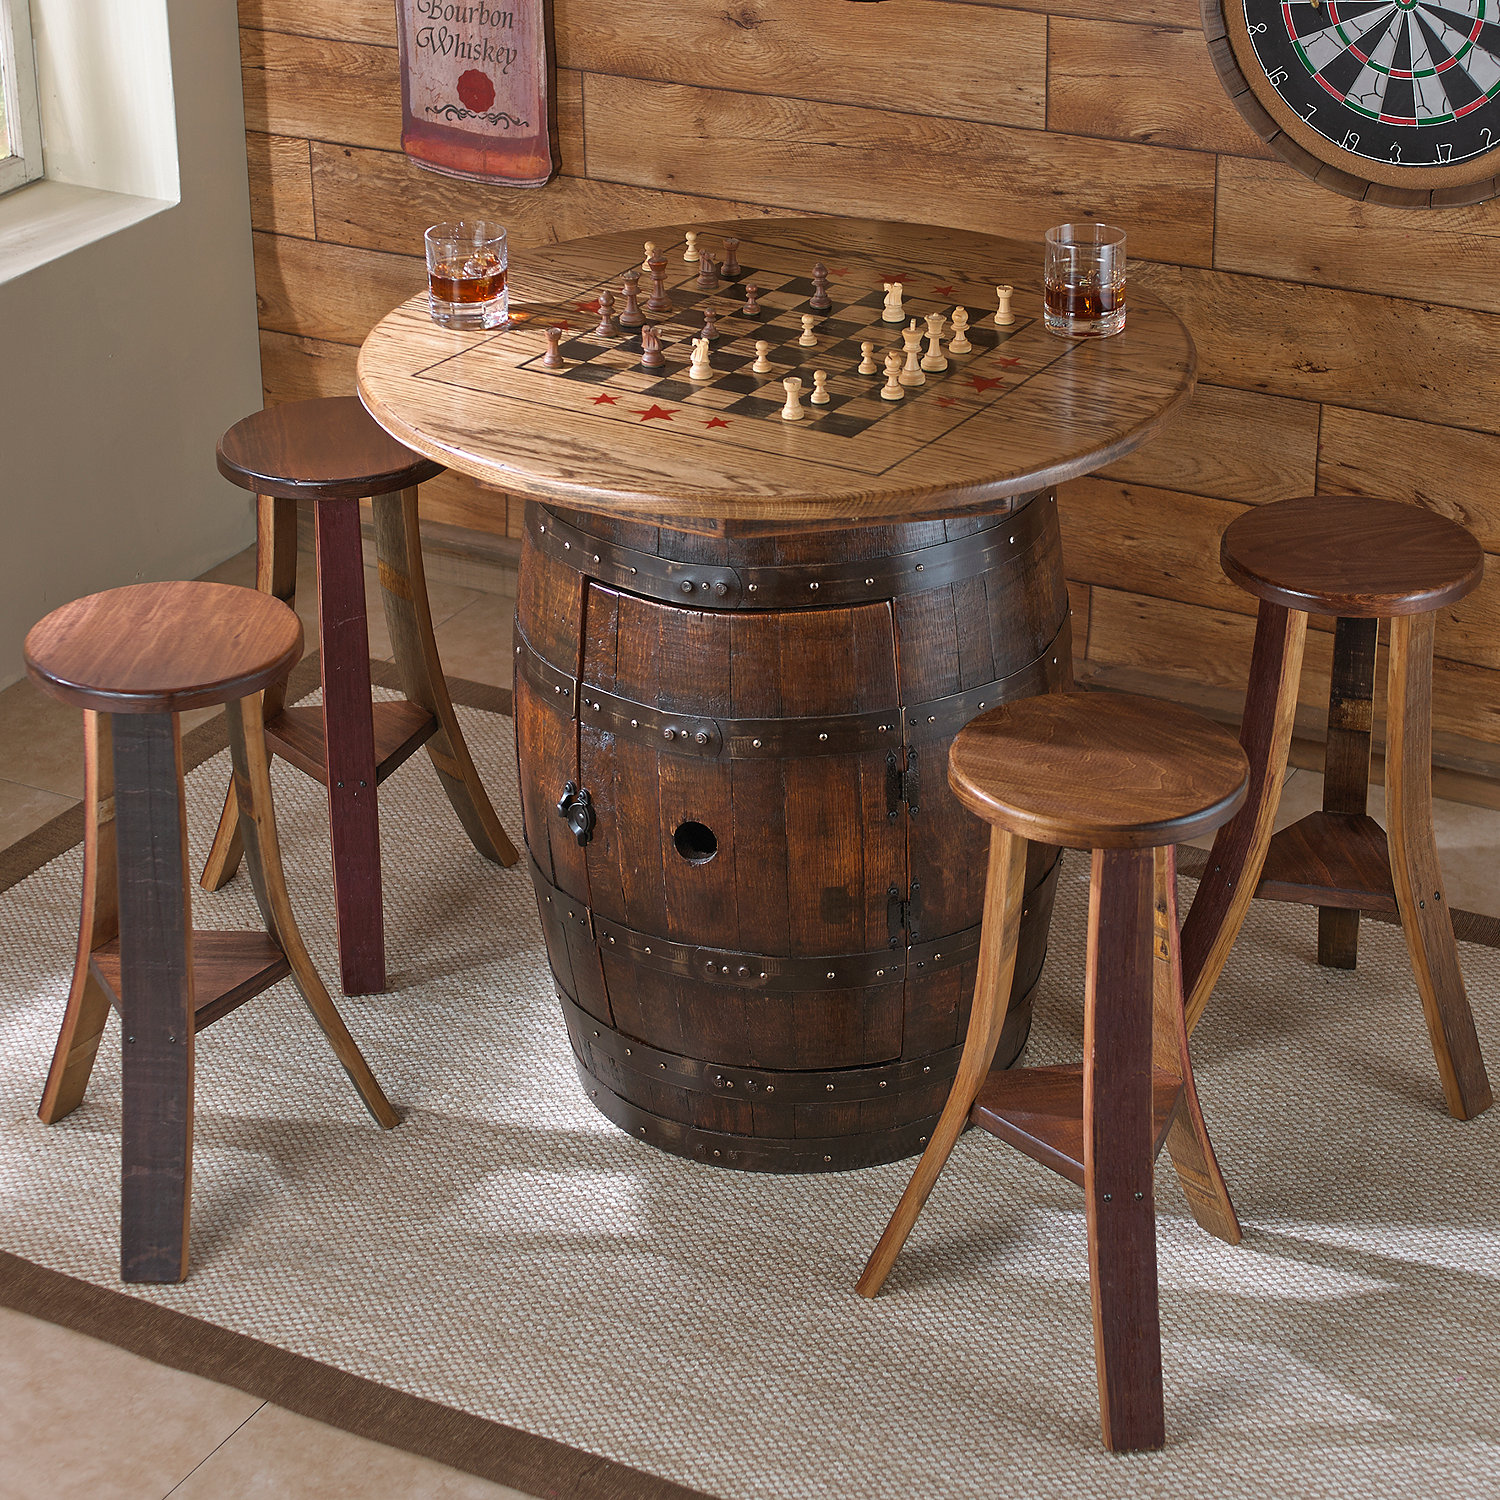 How To Take Care Of Your Whiskey Barrel Furniture